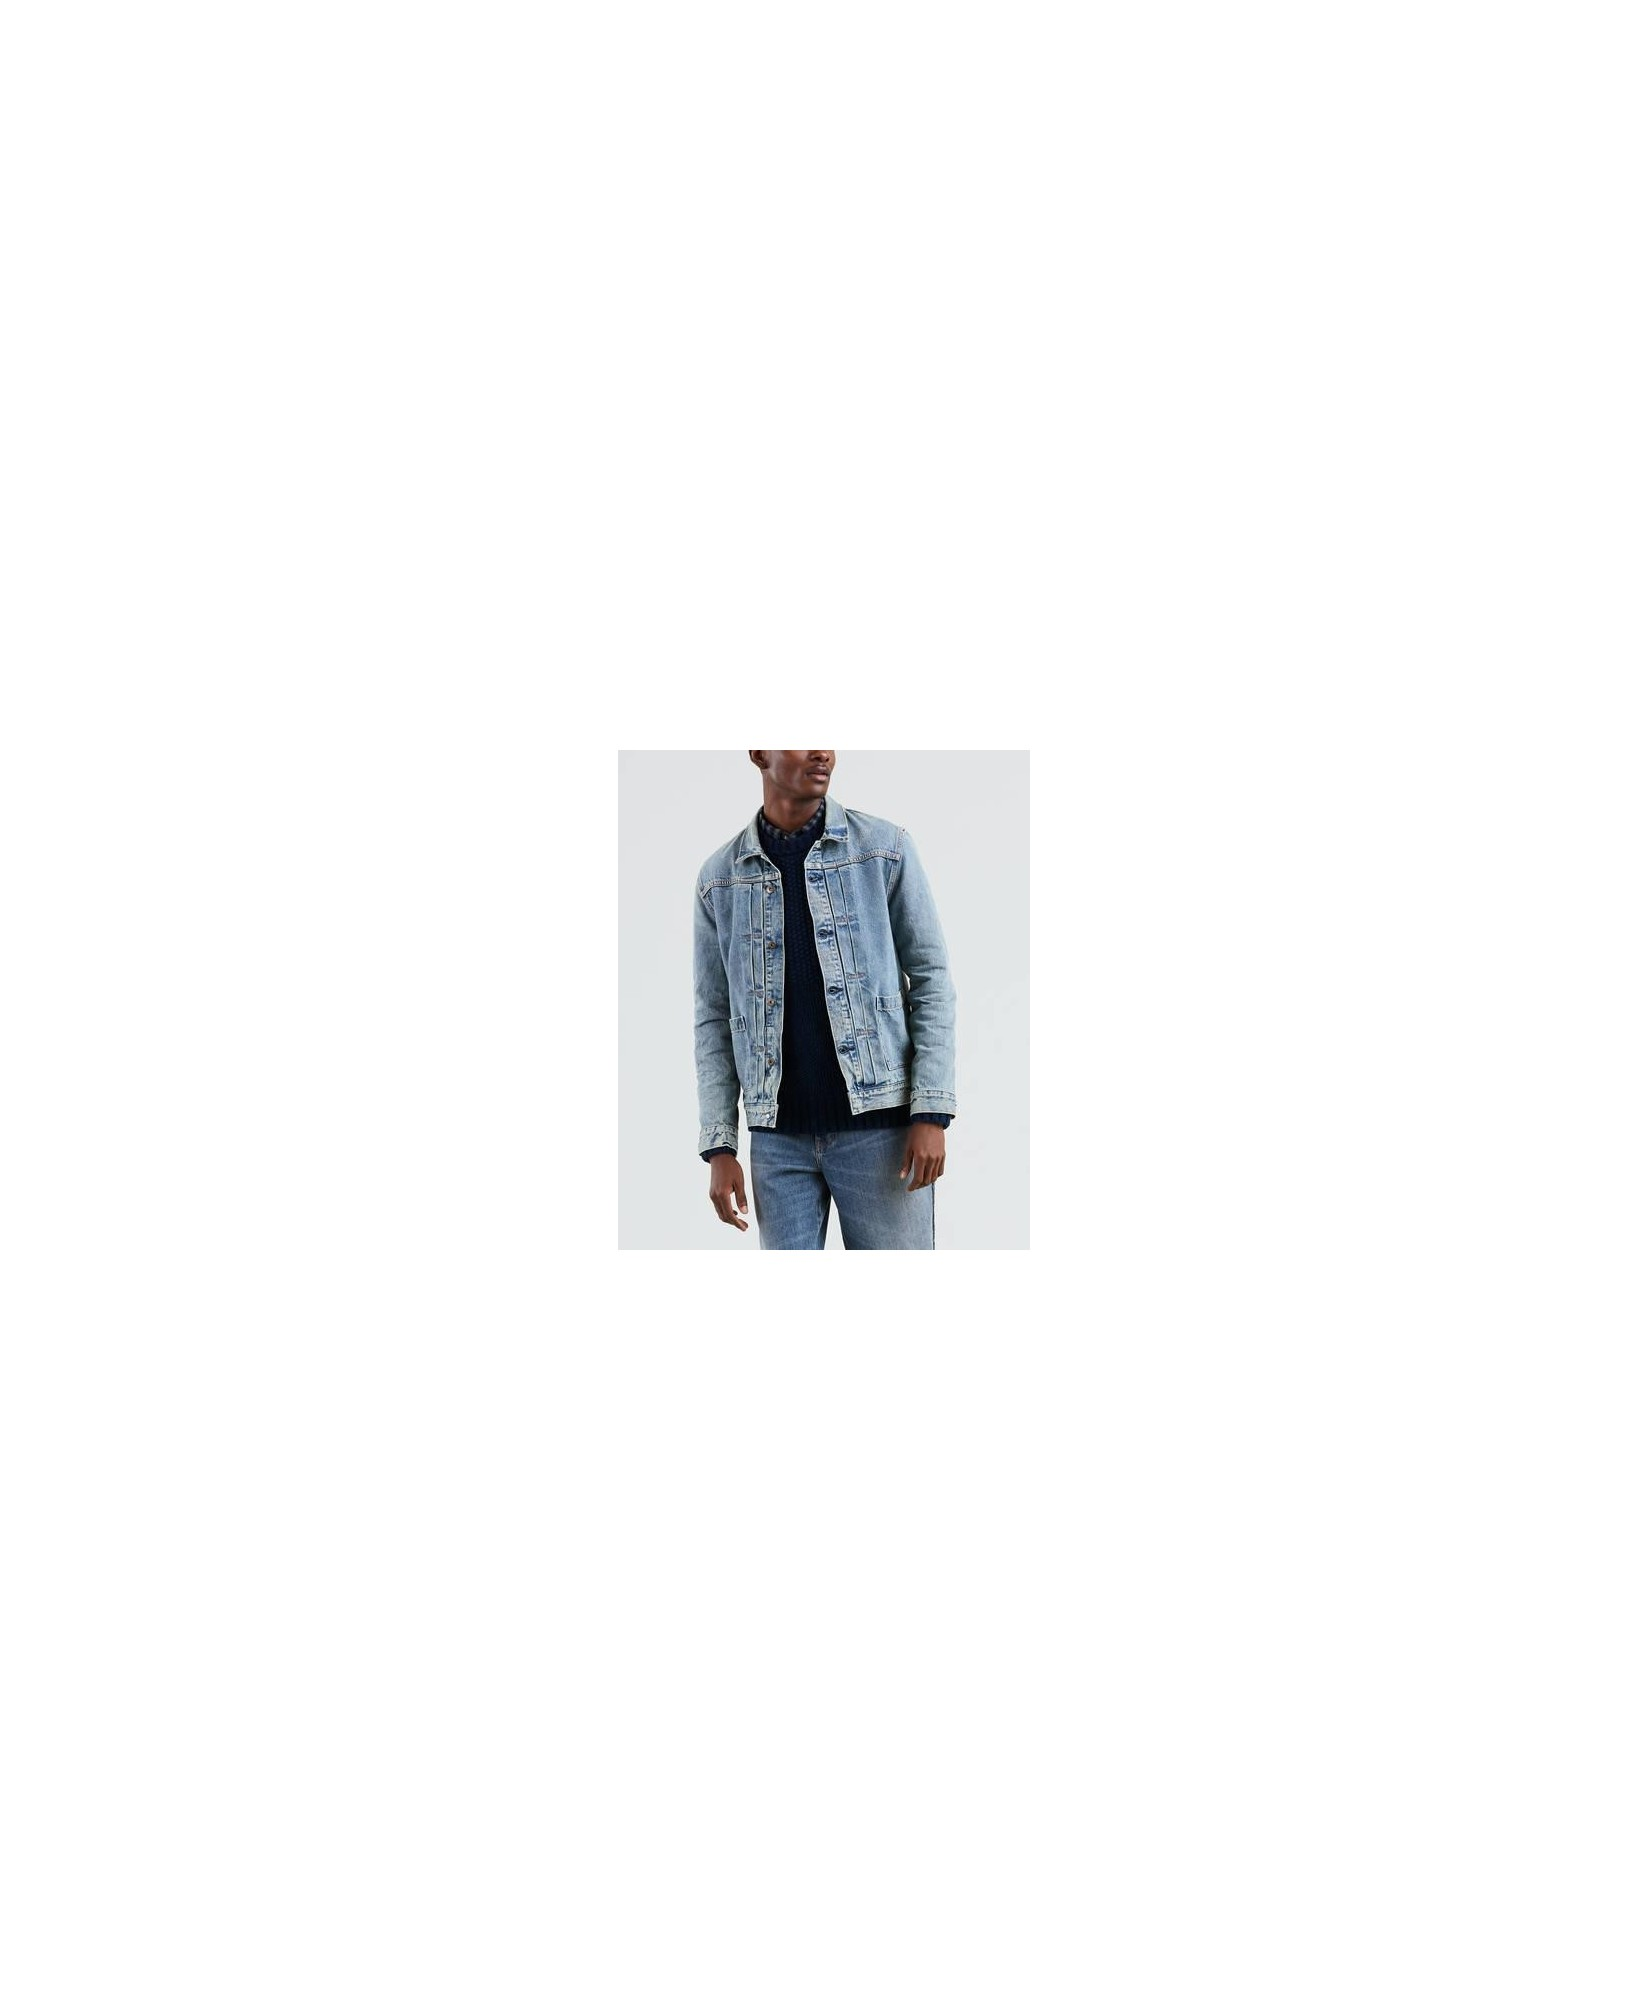 LEVI'S MADE &CRAFTED TYPE II WOORN TRUCKER JACKET LEVI'S MADE &CRAFTED TYPE II WOORN TRUCKER JACKET